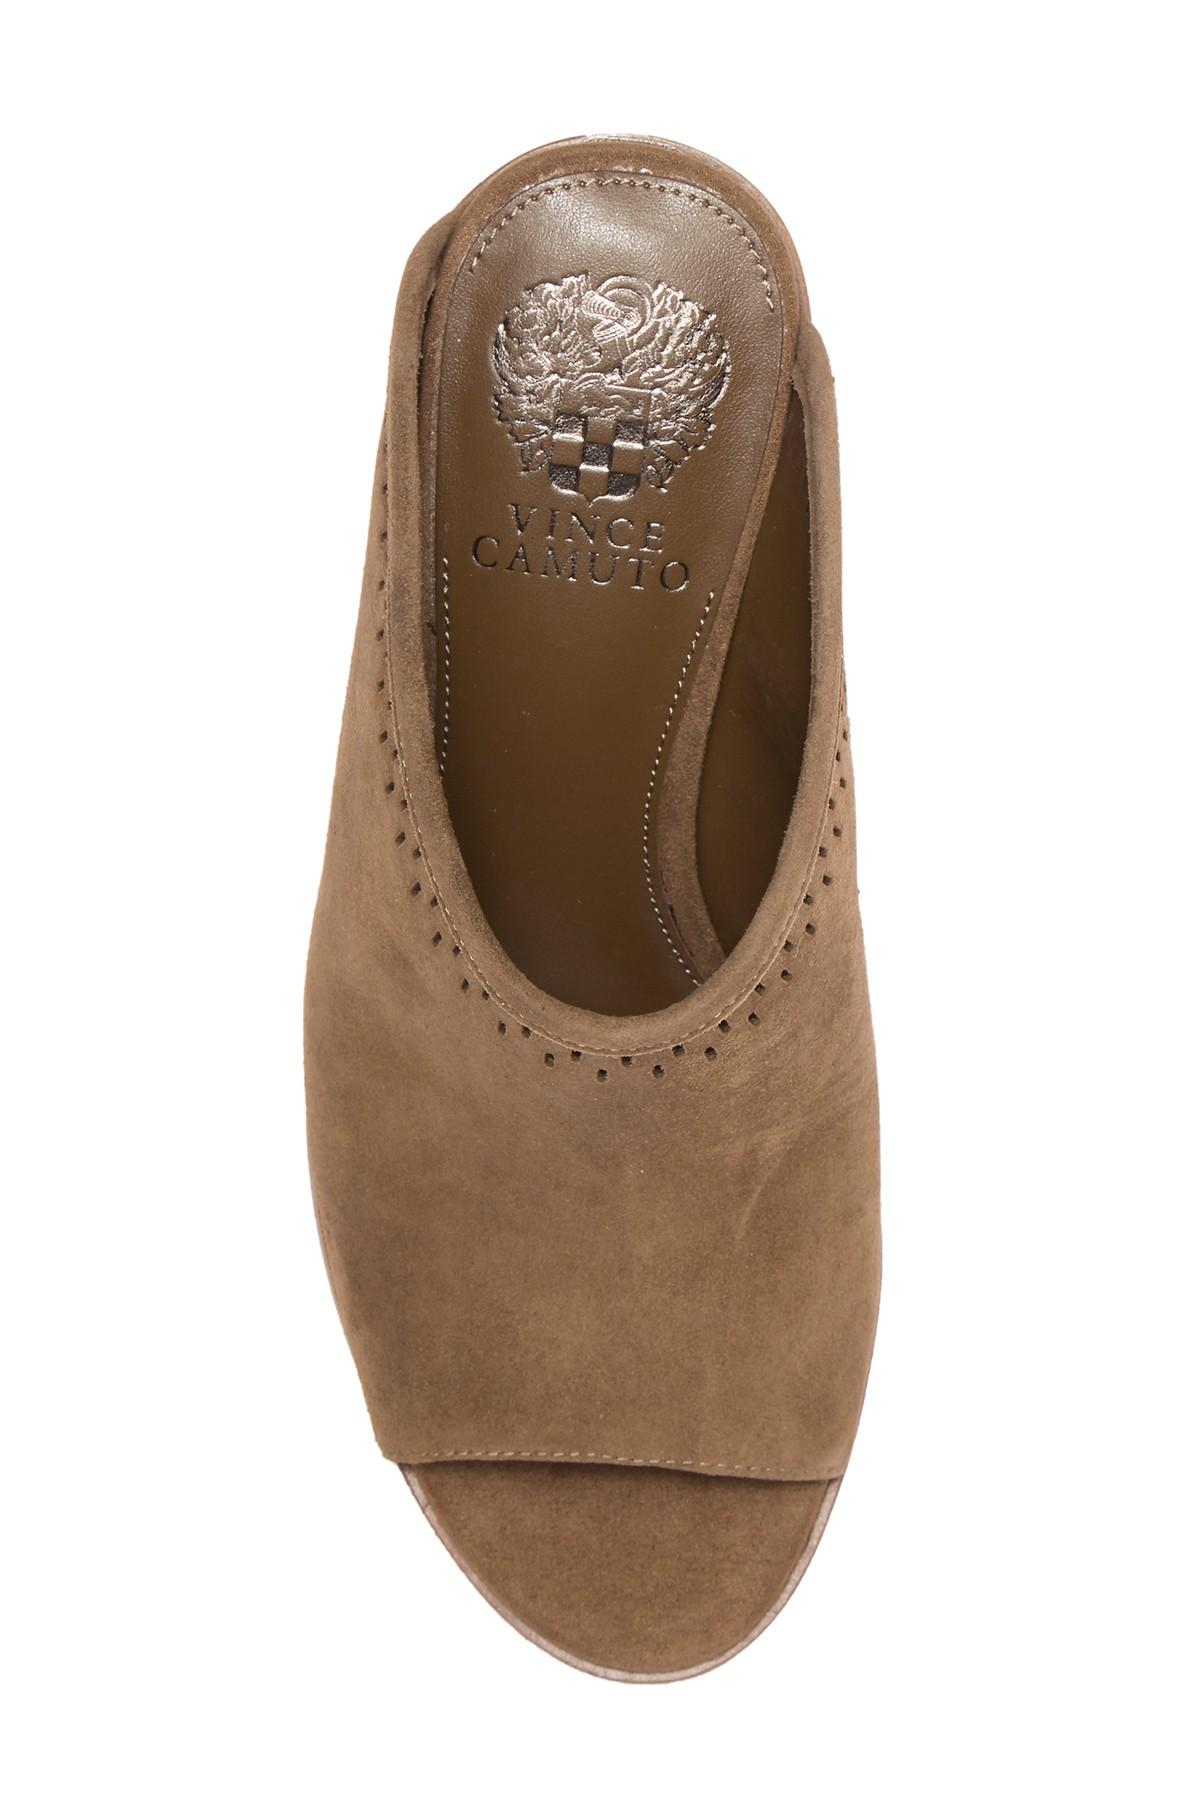 Vince Camuto Merlyna Suede Mule in